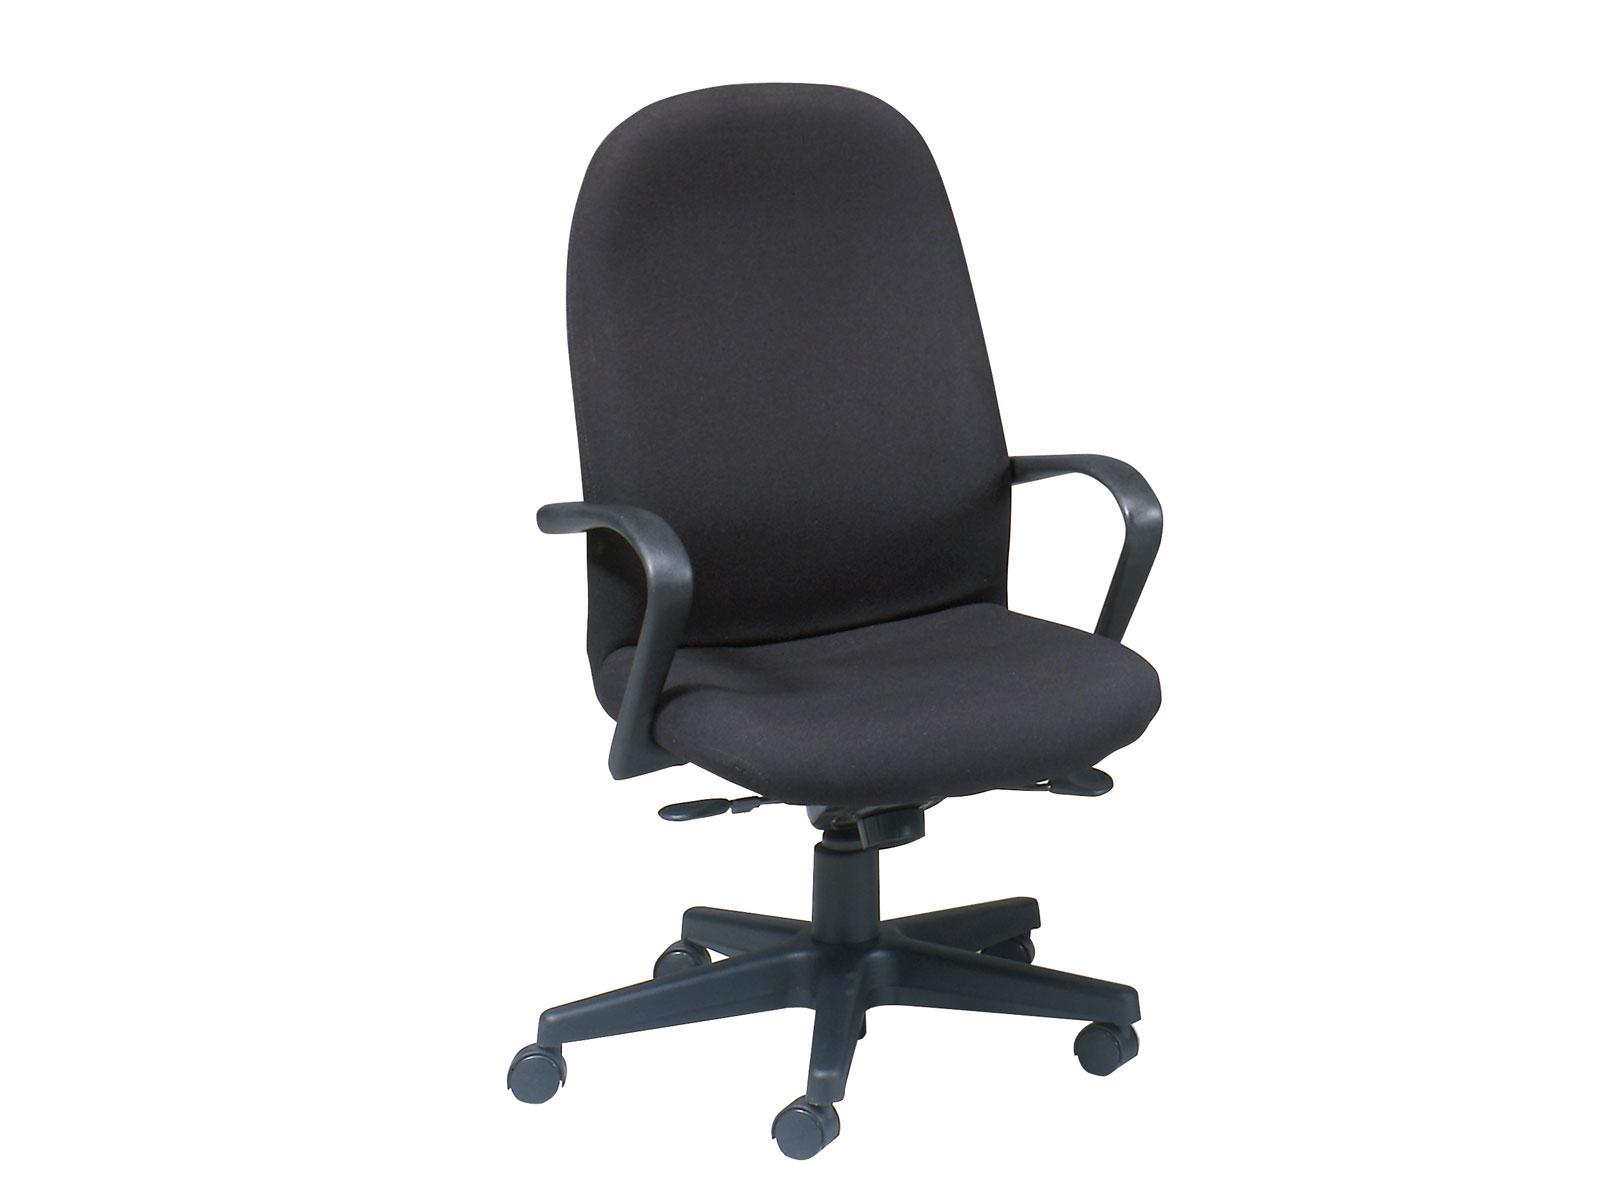 office chair rental drop leaf table with chairs exhibit design search ceoc 008 executive